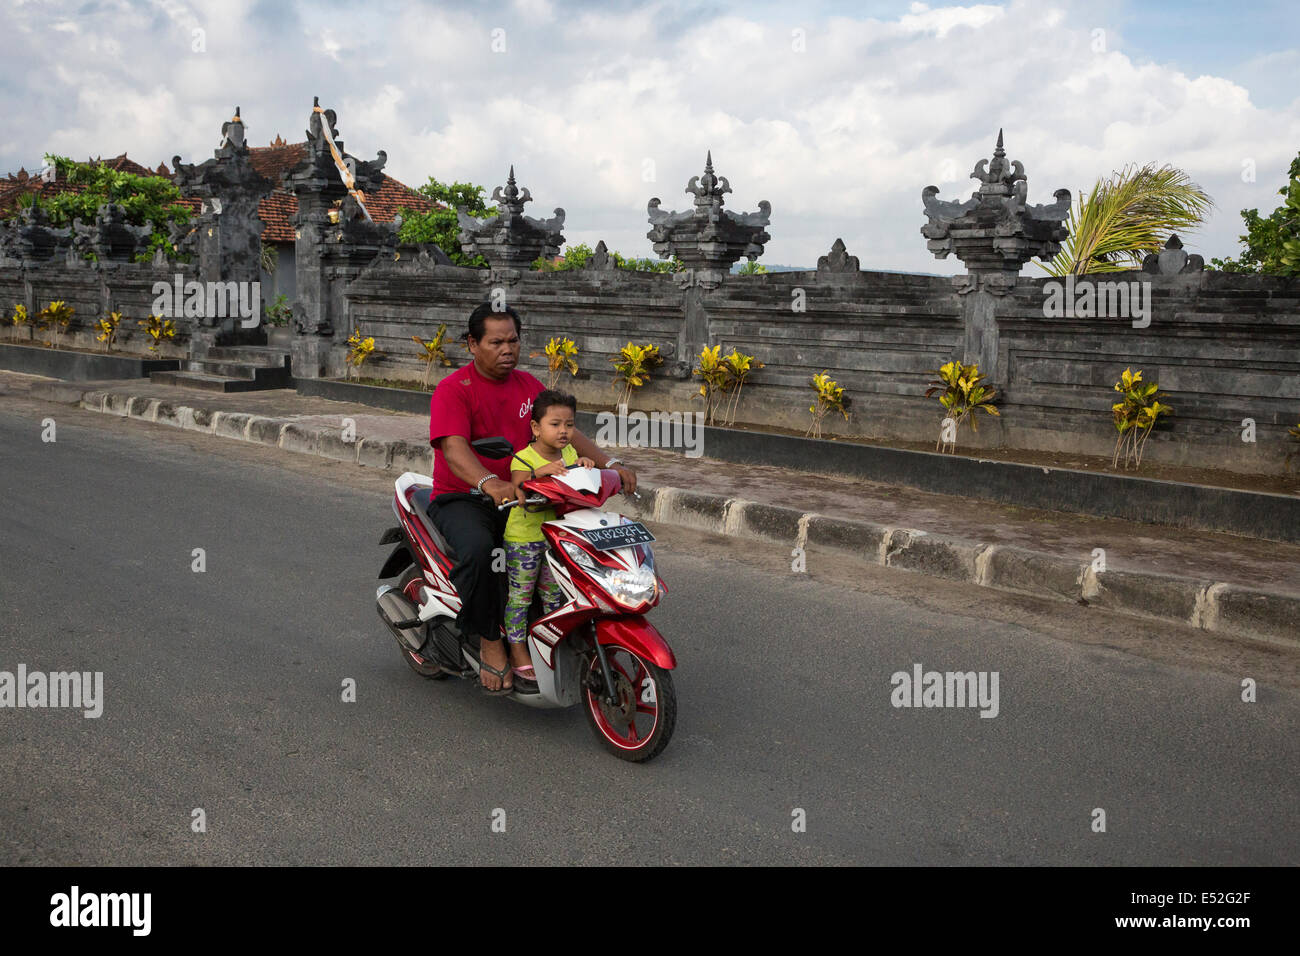 Bali, Indonesia.  Road safety.  Father and Daughter on Motorbike, no helmets. - Stock Image